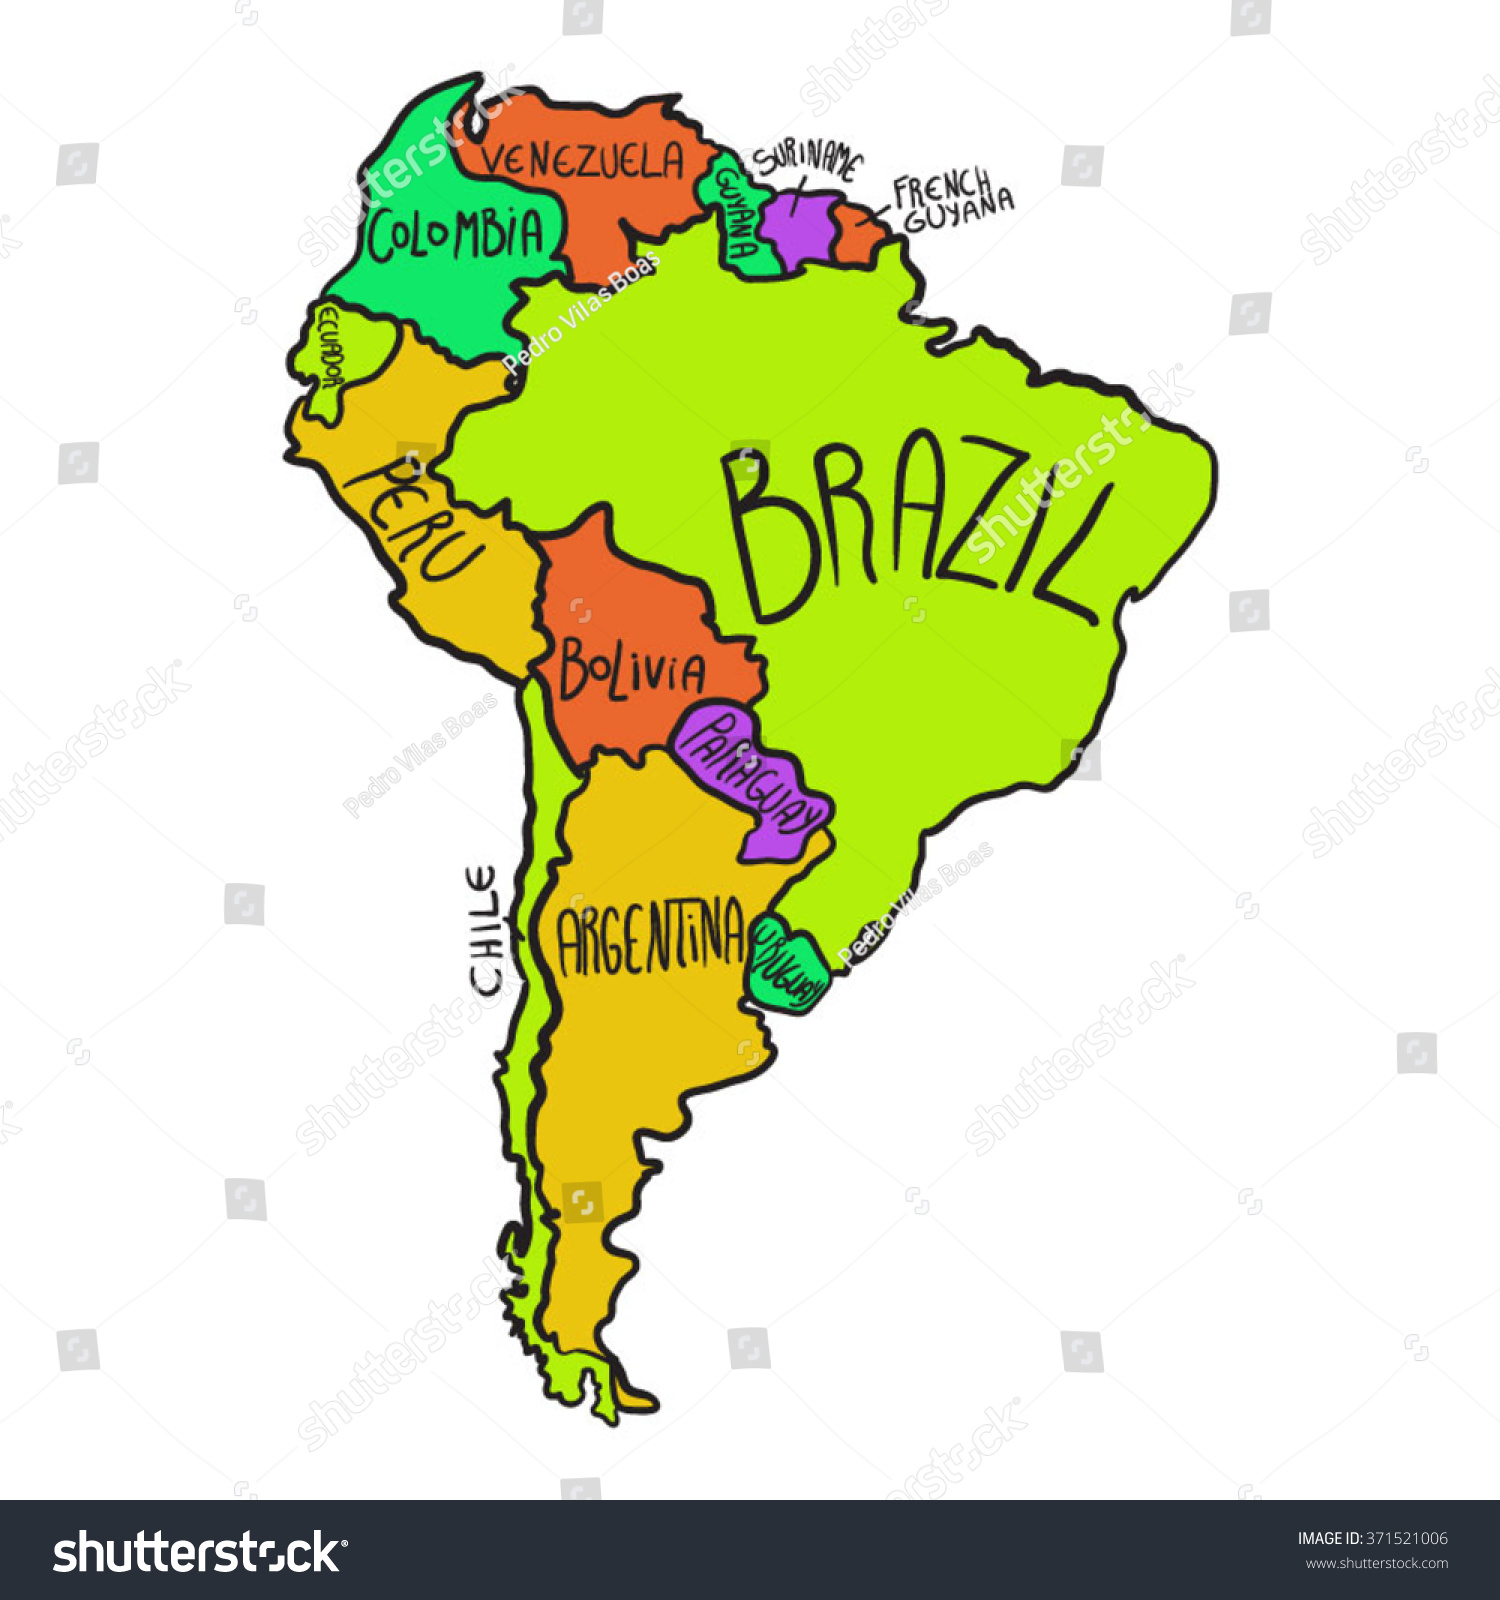 south america map clipart - photo #20